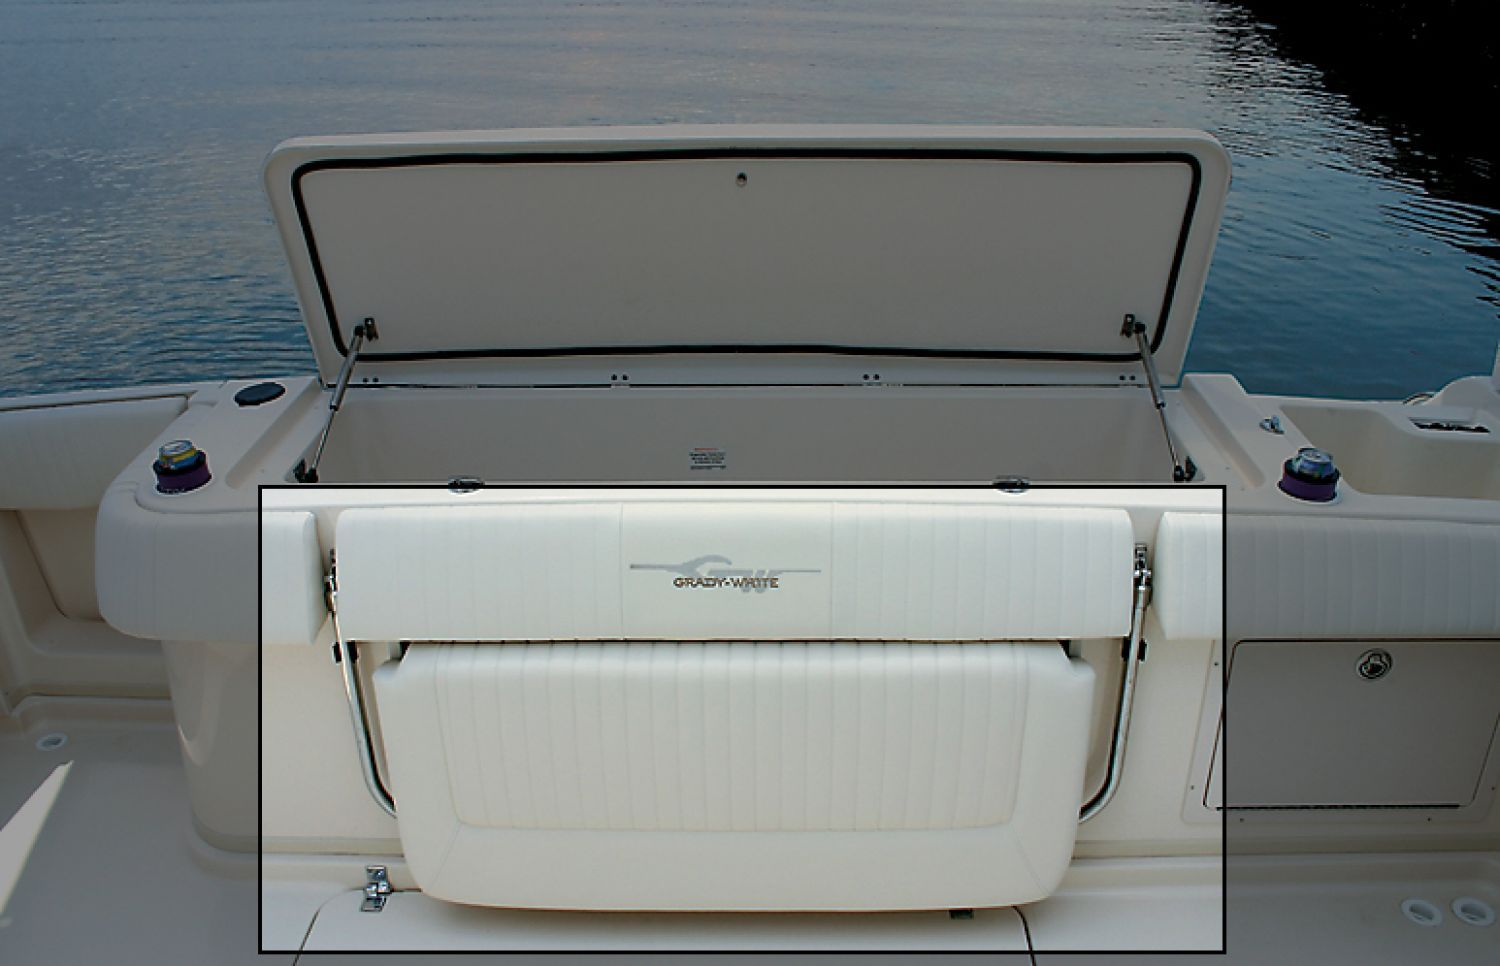 Boat Bench Seat With Storage Seating Port Lounge Seat W Enclosed Storage Below Home Ideas